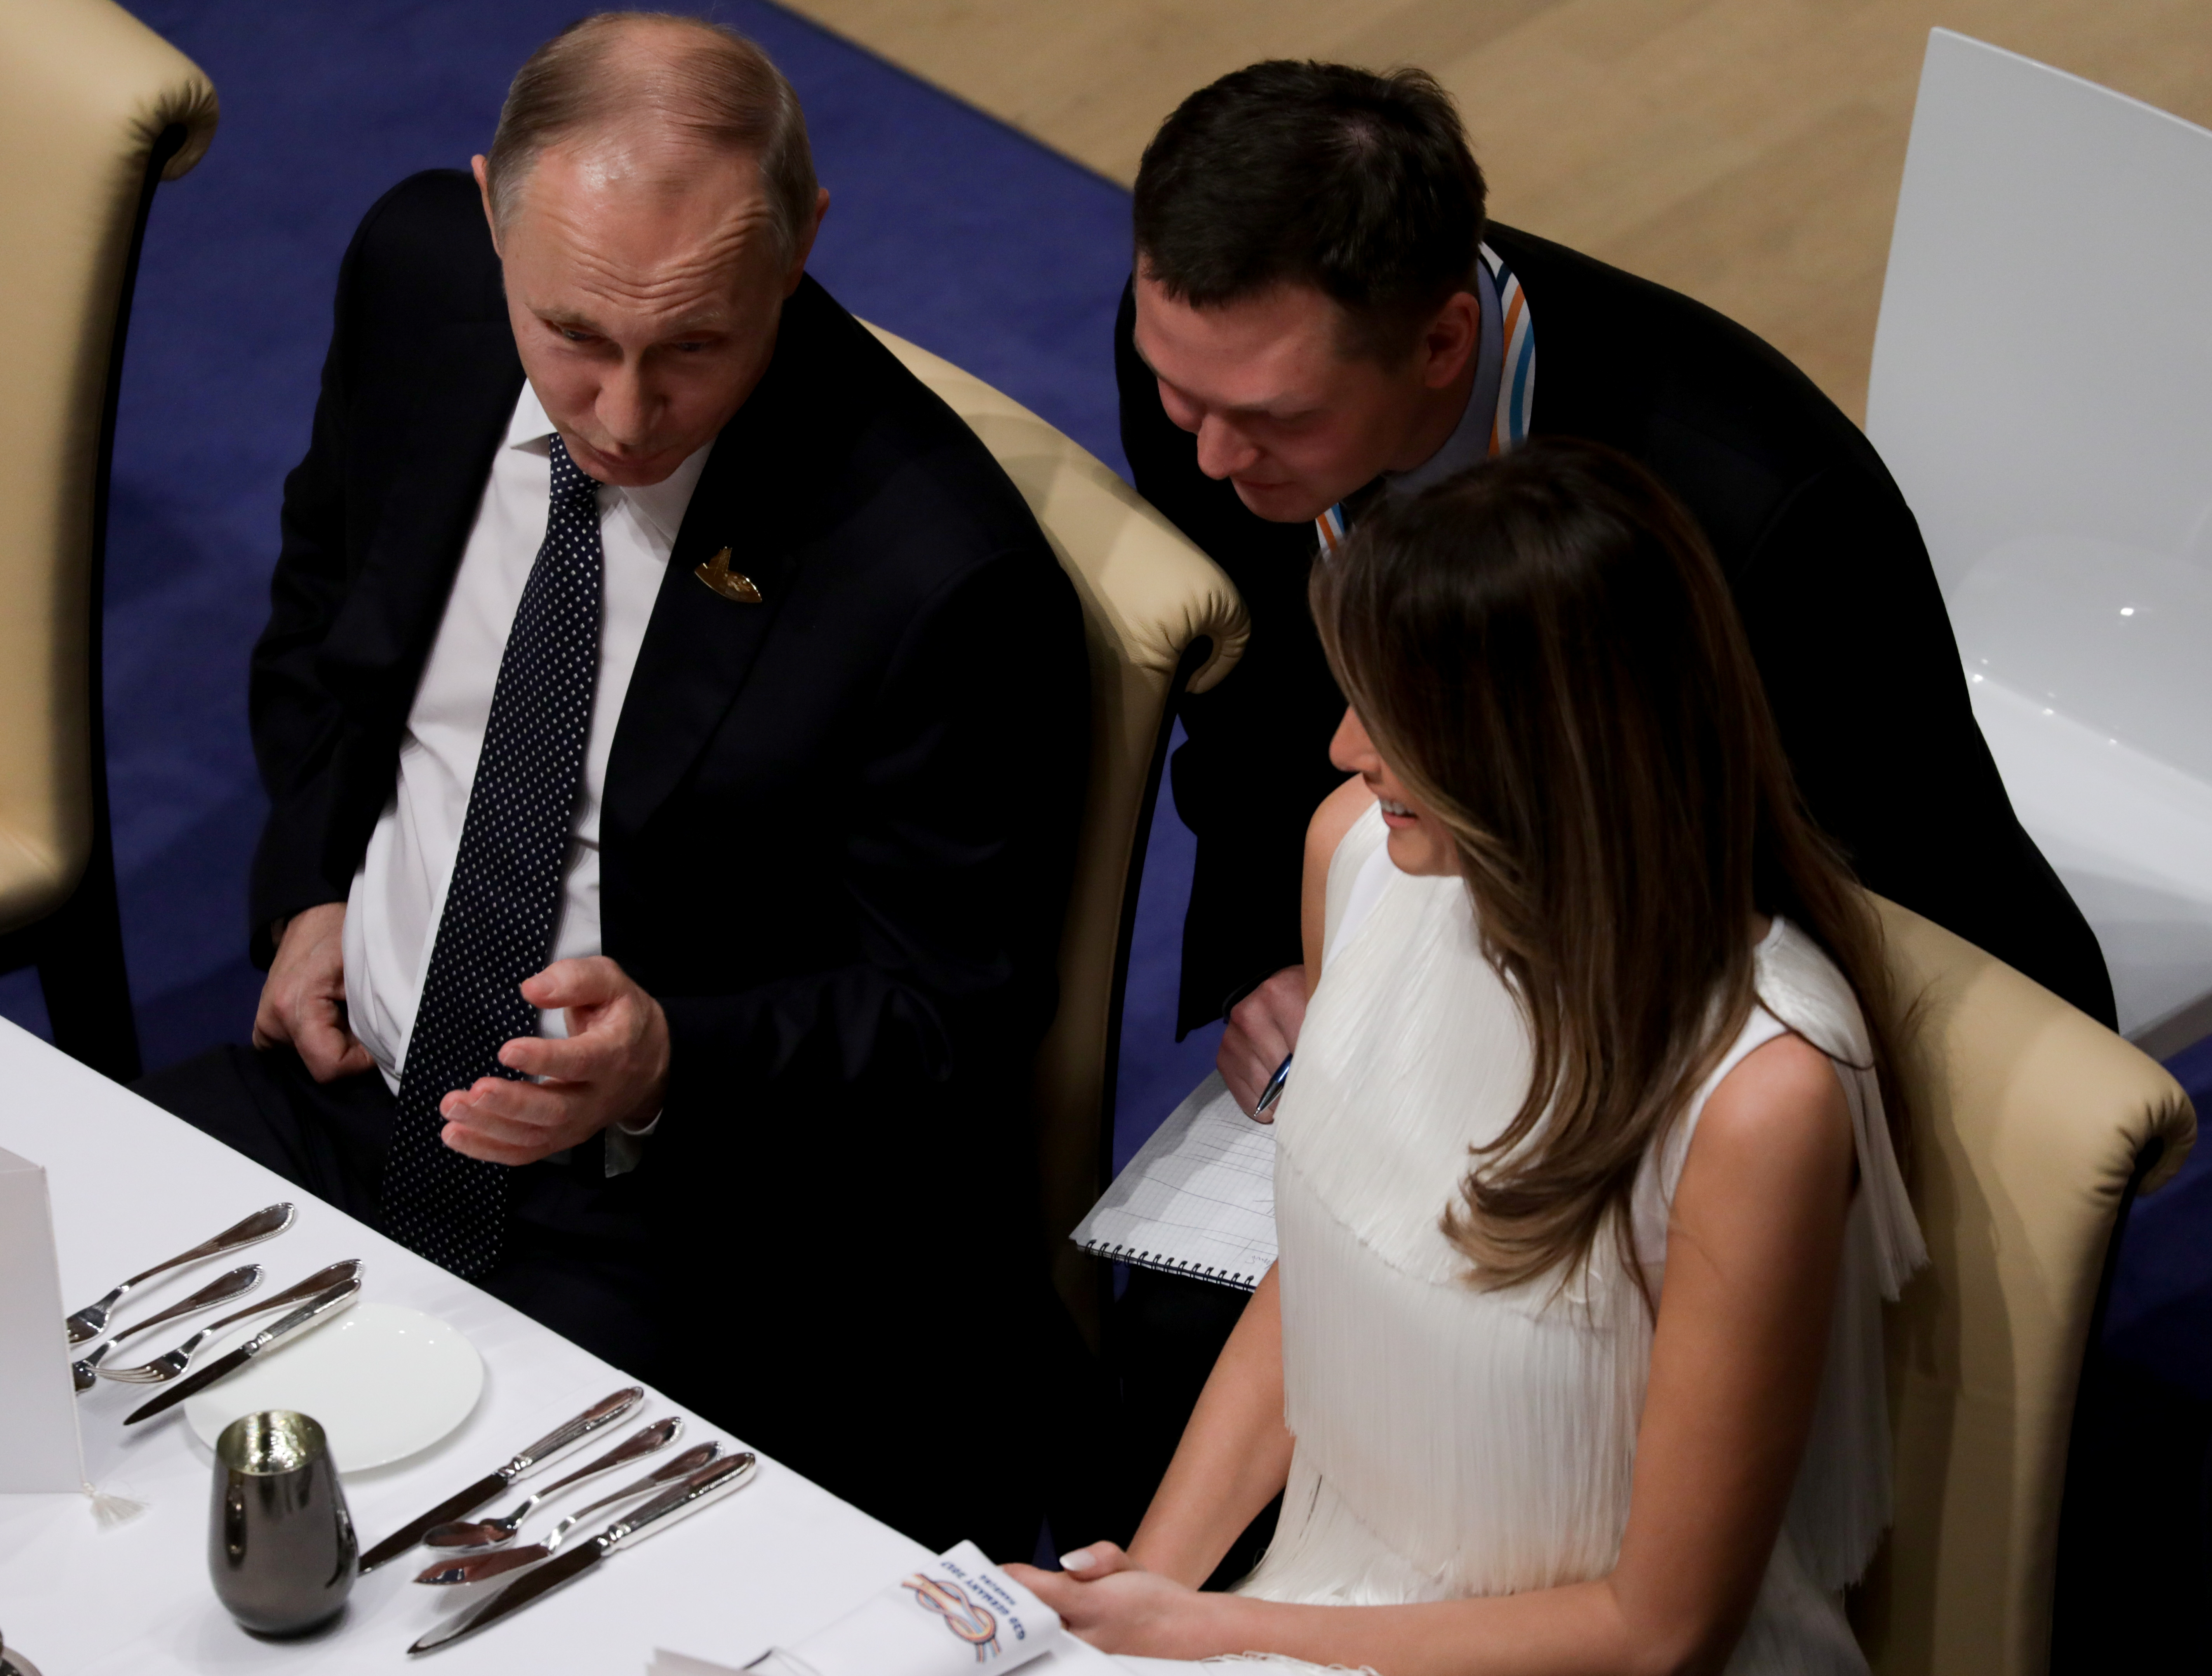 Russia's President Vladimir Putin talks to Melania Trump during the official dinner at the Elbphilharmonie Concert Hall during the G20 summit in Hamburg, Germany, July 7, 2017.